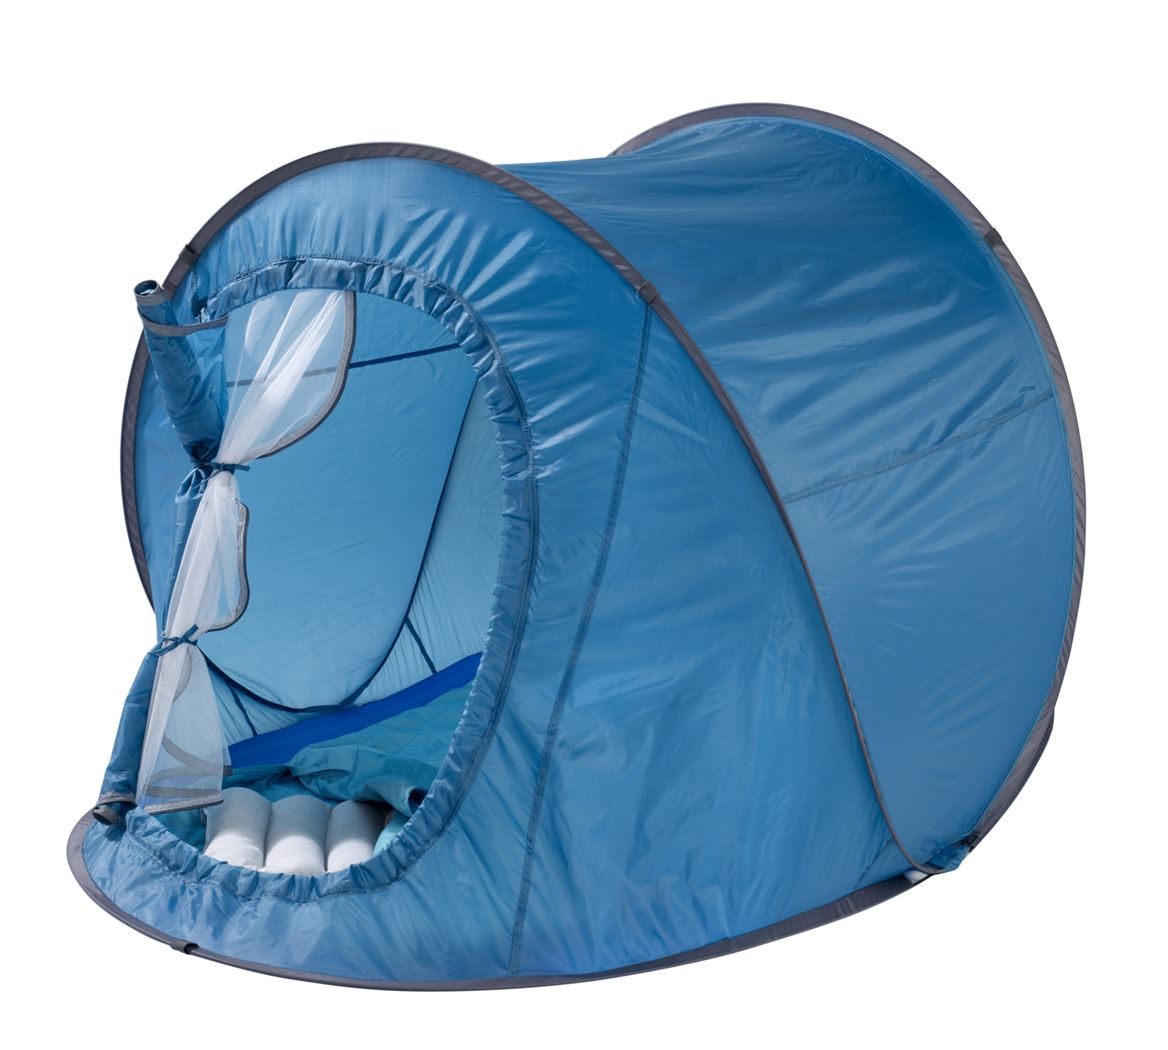 QUICK Tenda pop up blu H 105 x W 120 x L 200 cm_quick-tenda-pop-up-blu-h-105-x-w-120-x-l-200-cm